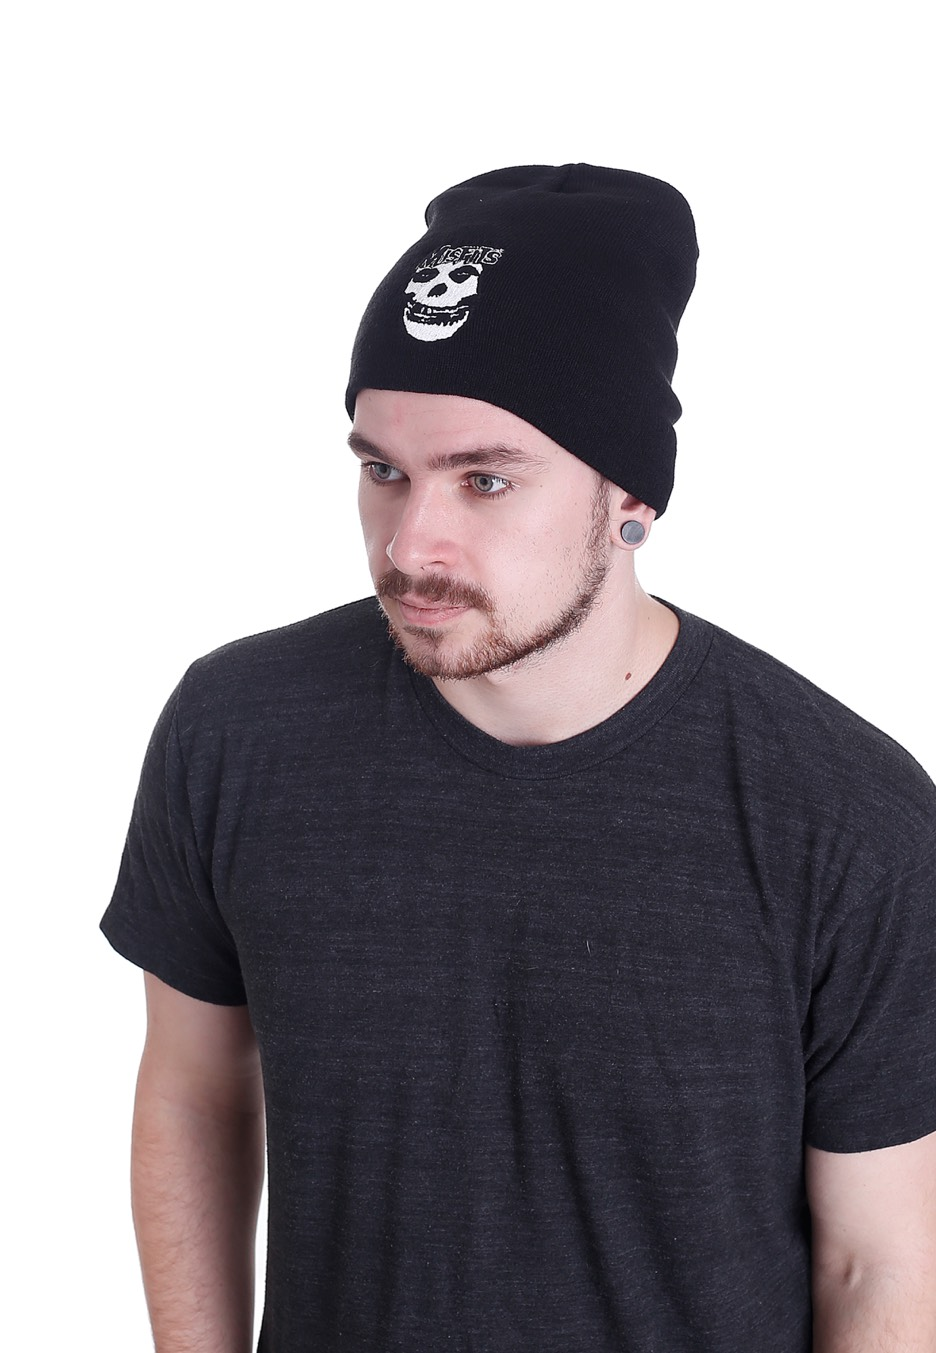 Misfits - Skull - Beanie - Official Punk Merchandise Shop ... 015d2a5238f